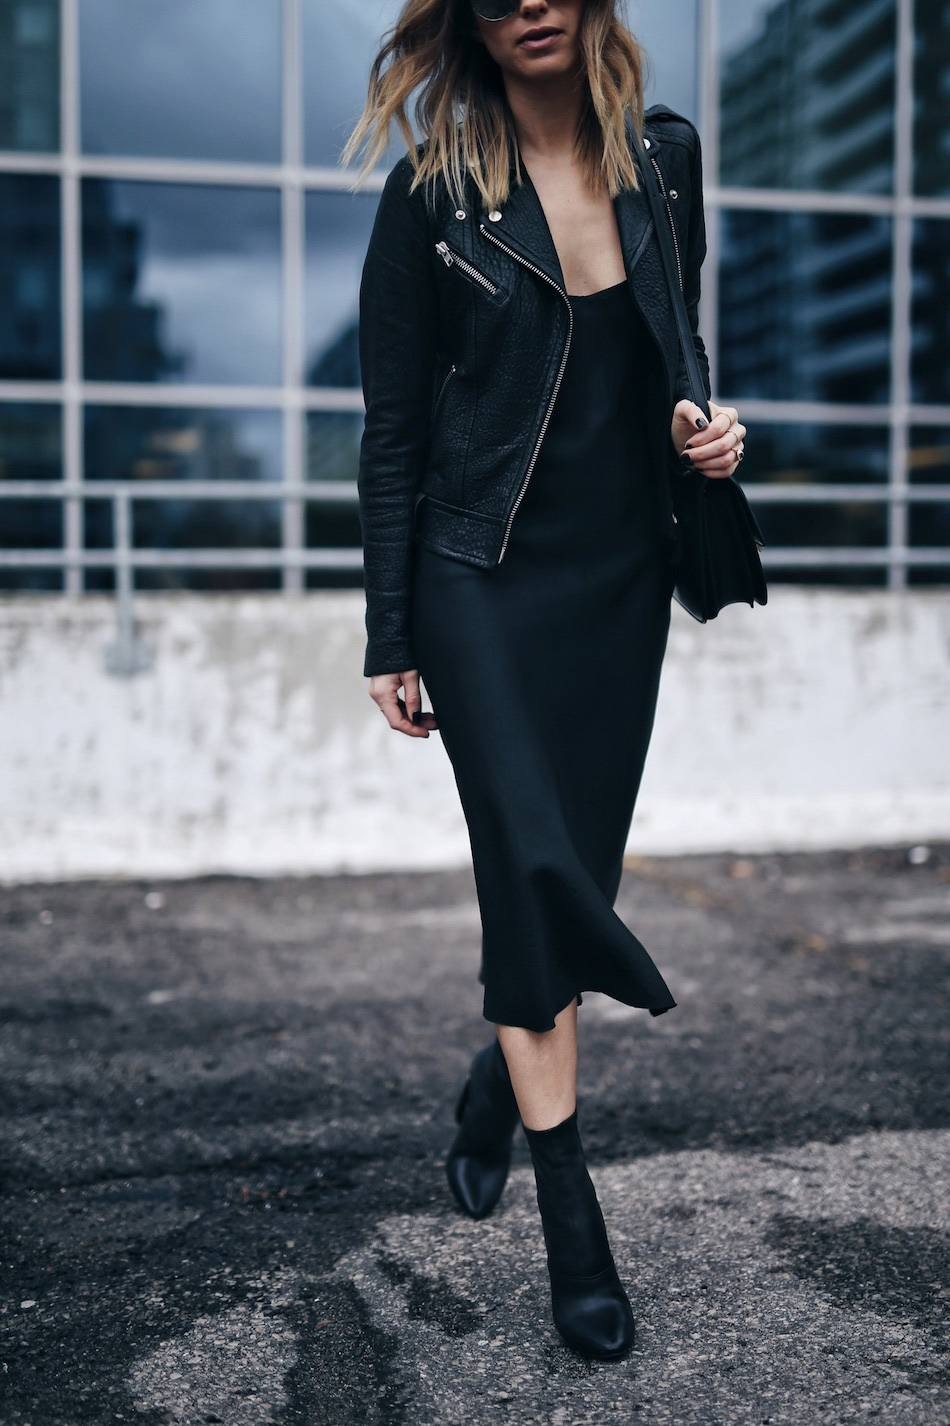 style-and-beauty-blogger-jill-lansky-of-the-august-diaries-in-a-mackage-rumer-leather-jacket-and-slip-dress-celine-bag-and-3-1-phillip-lim-kyoto-boots